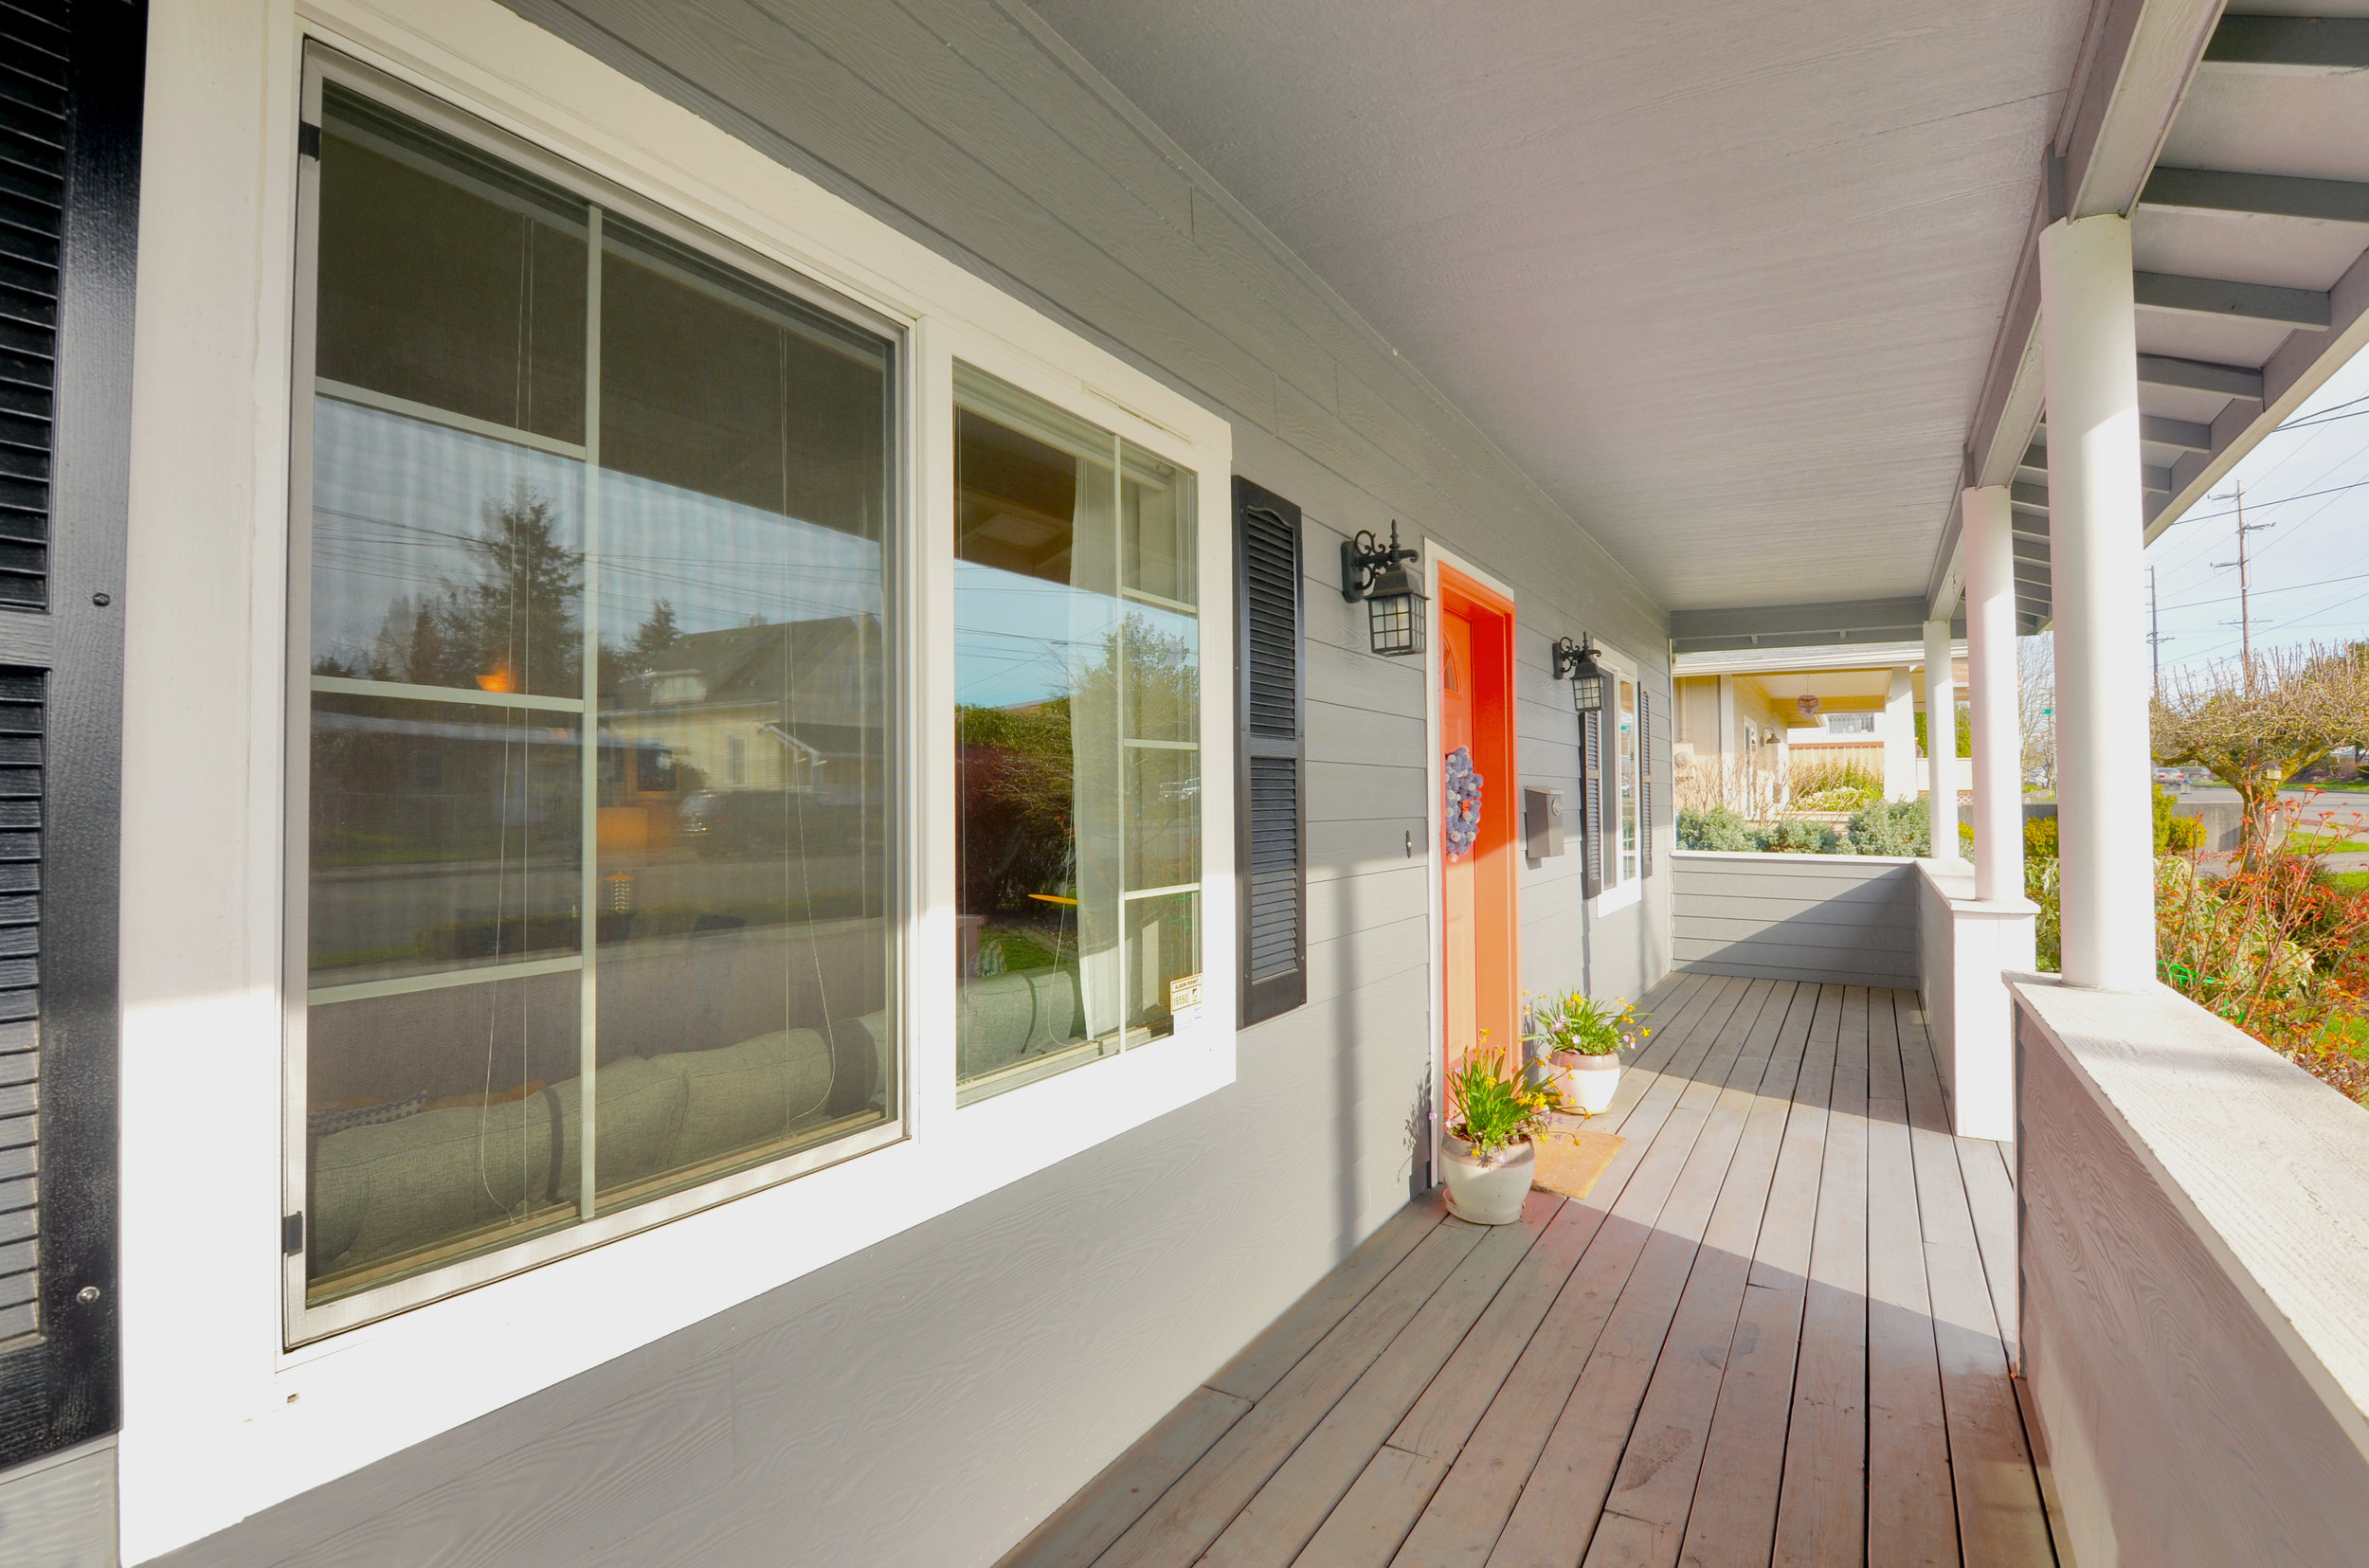 This bungalow front porch offers you a place to shake off the rain, or set up a porch swing.